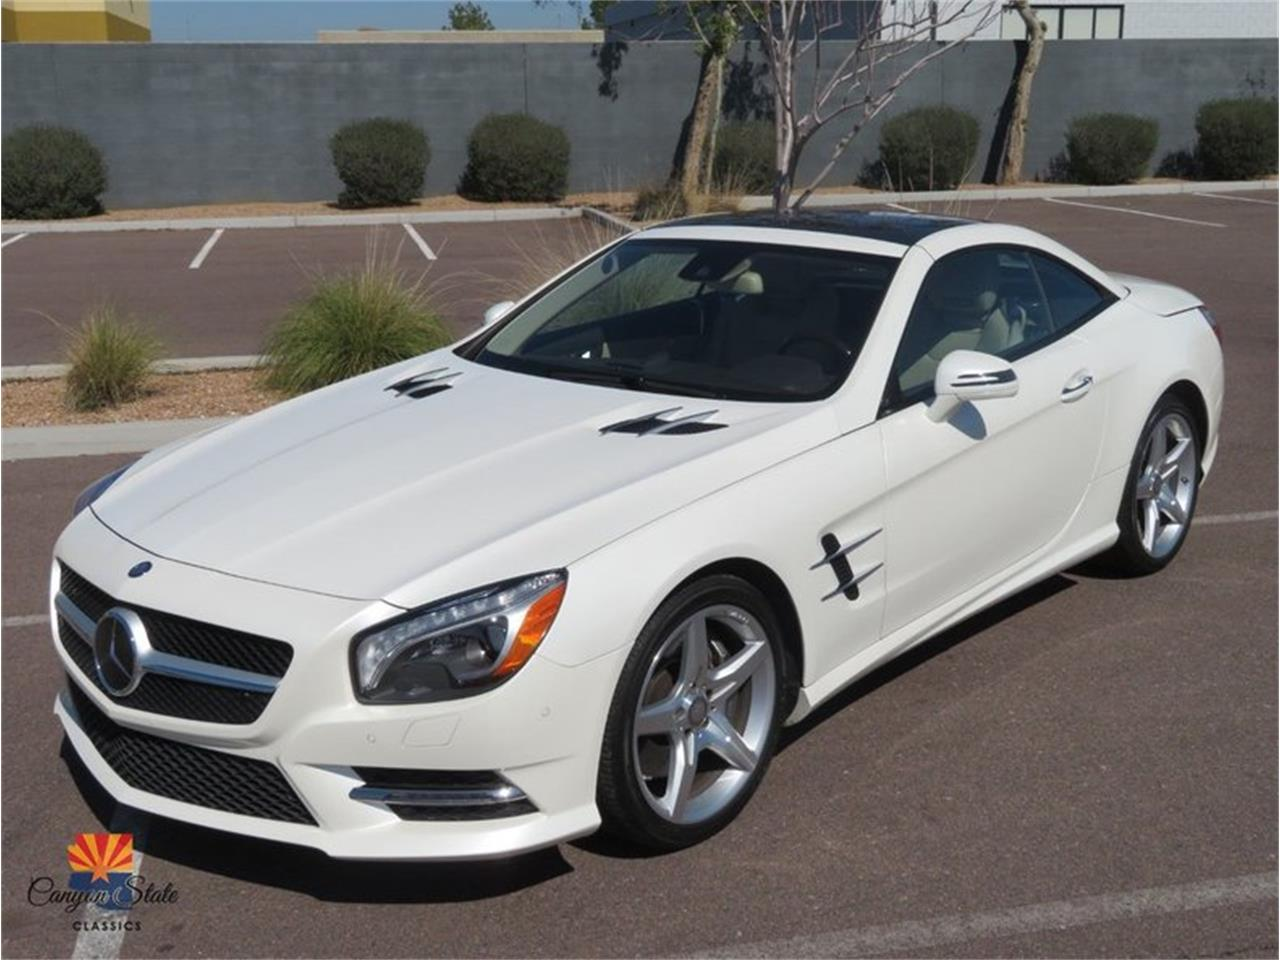 2013 Mercedes-Benz SL-Class for sale in Tempe, AZ – photo 6